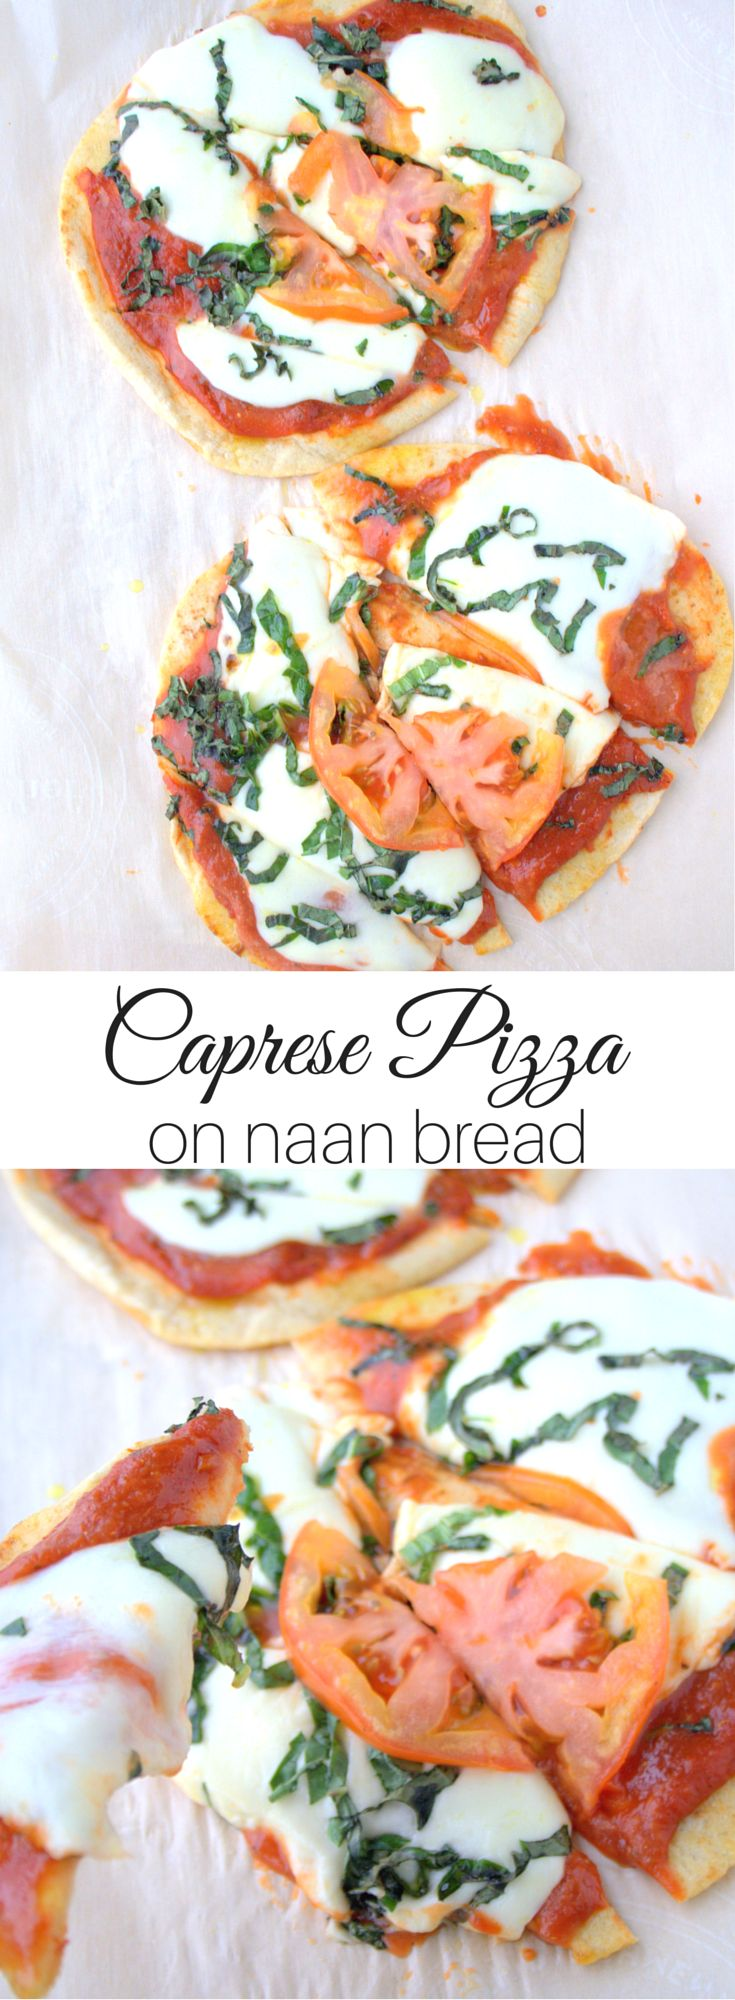 This is the yummiest, easiest pizza I've ever made! | The Refreshanista | Caprese Pizza on Naan Bread | Vegetarian Pizza Recipe | Potluck on OhMyVeggies.com